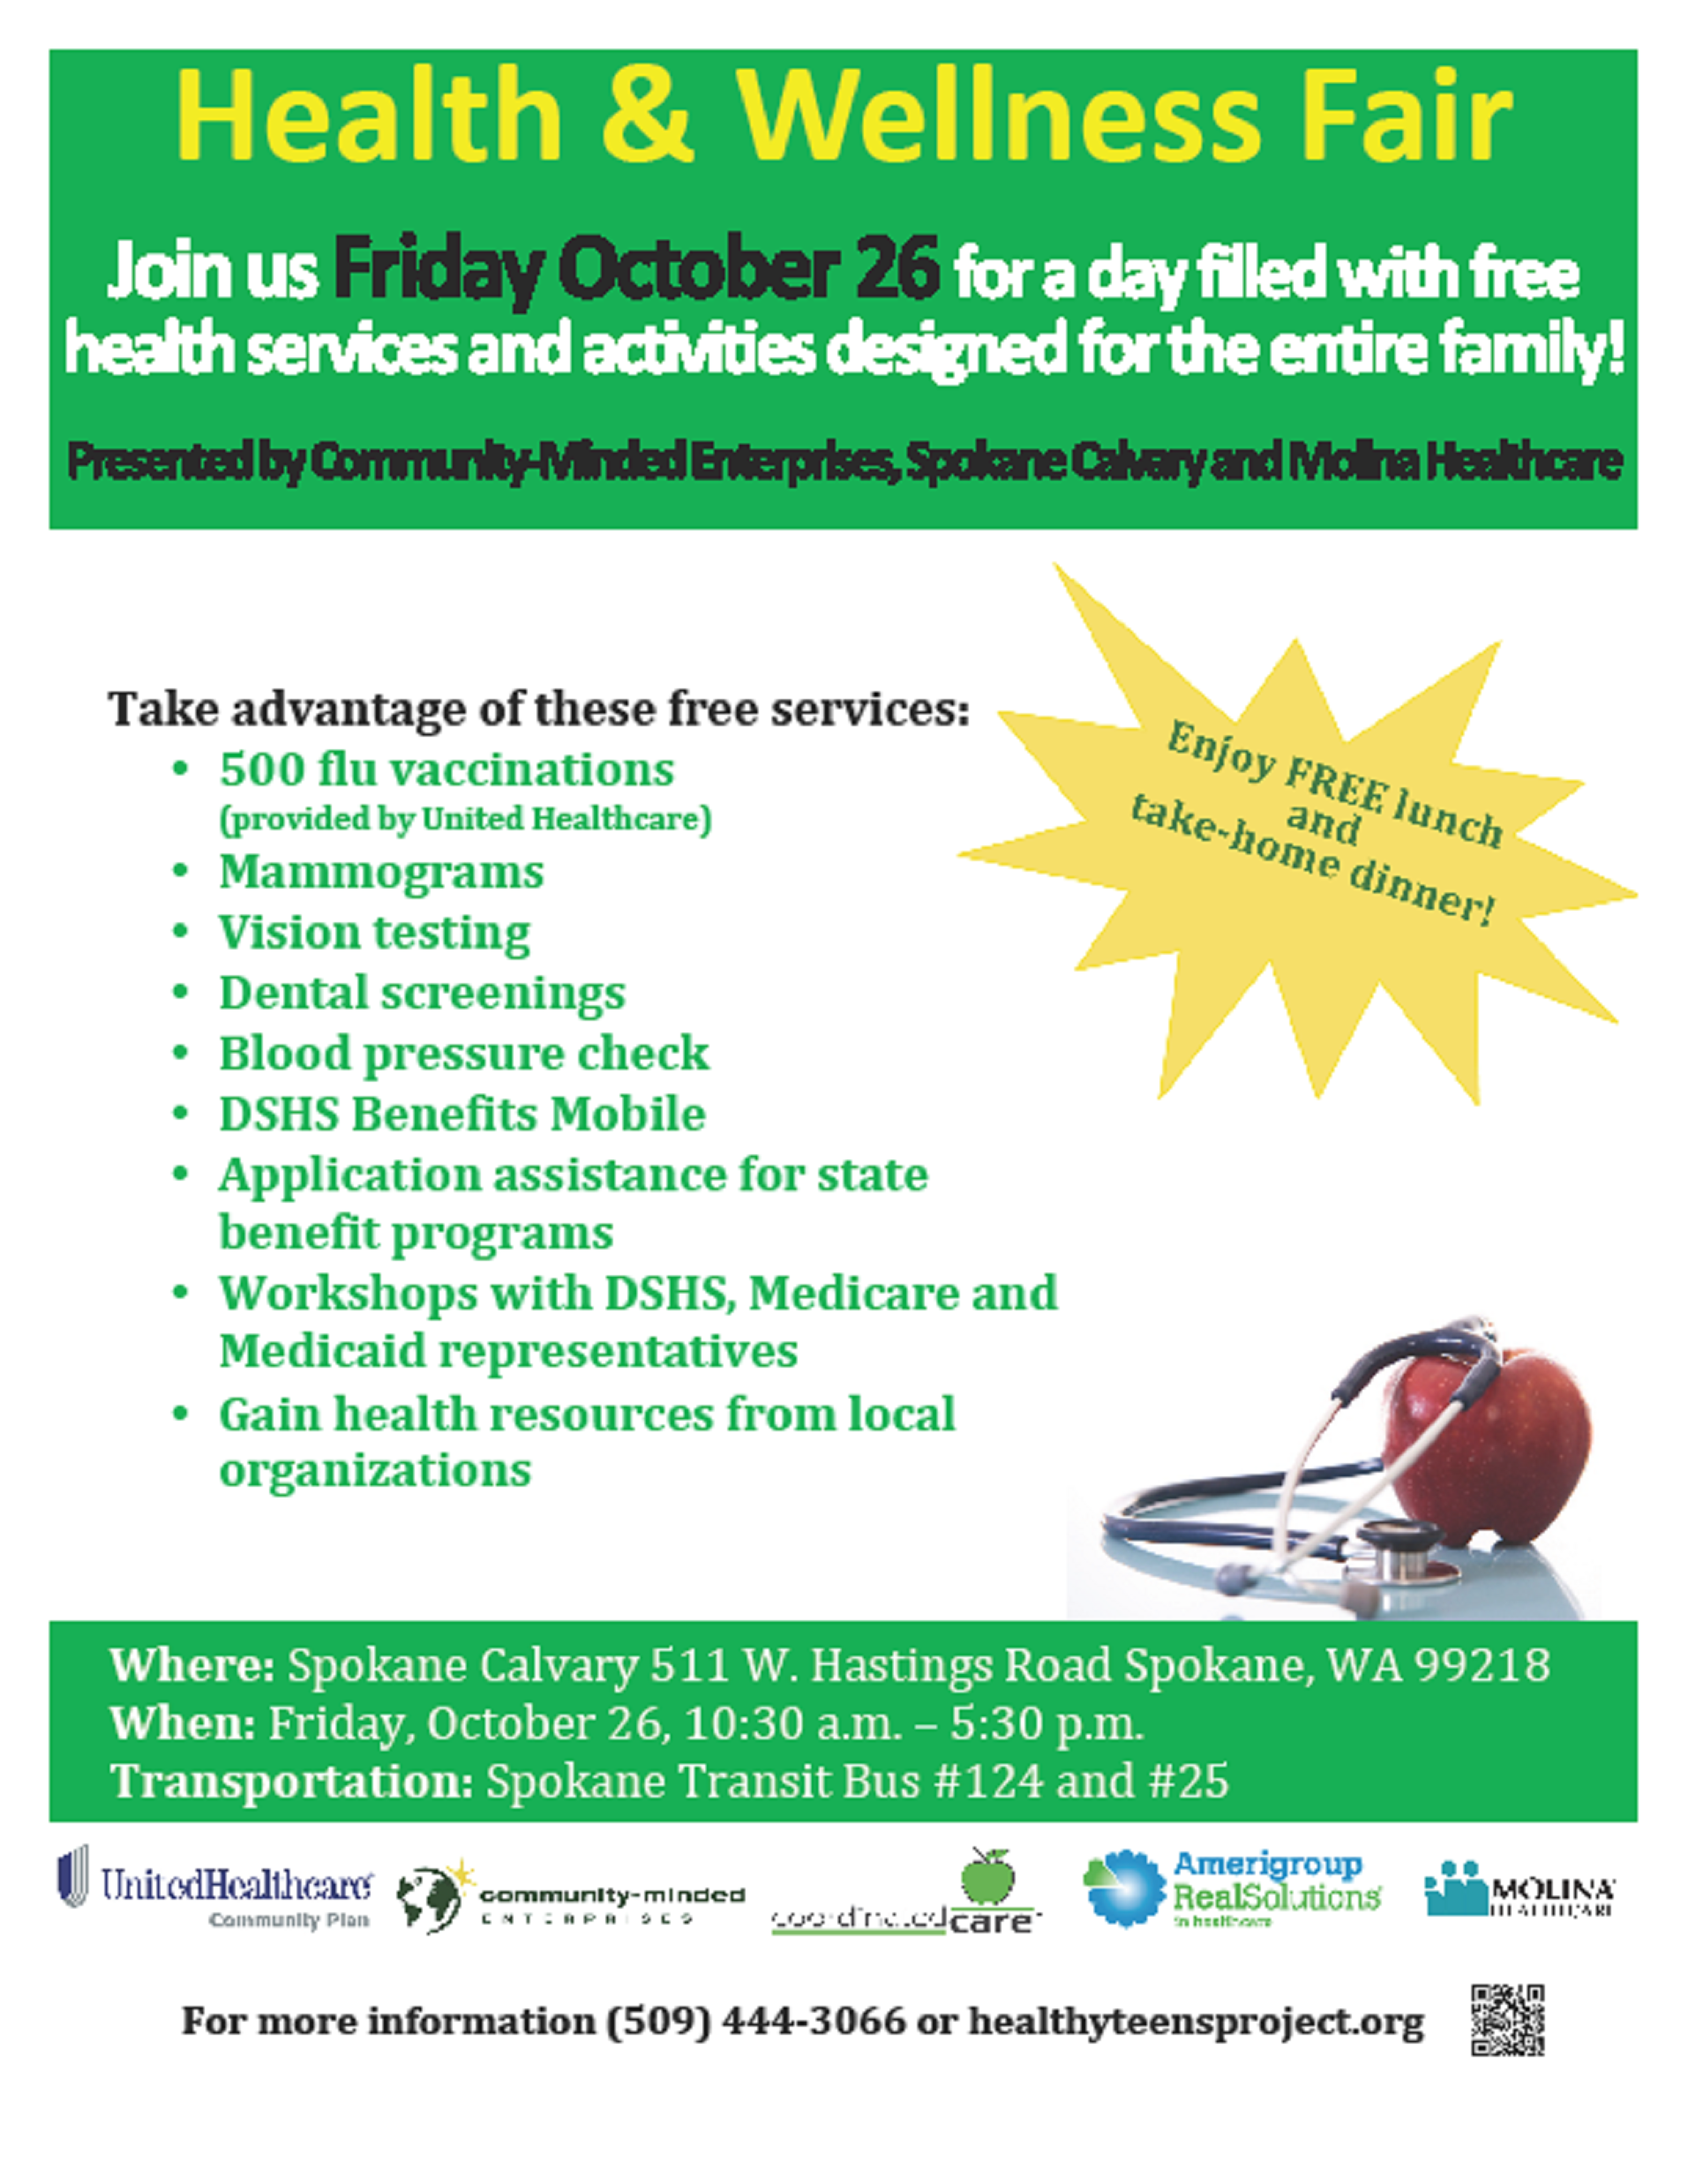 Health And Wellness Fair Flyer Health Fair Health